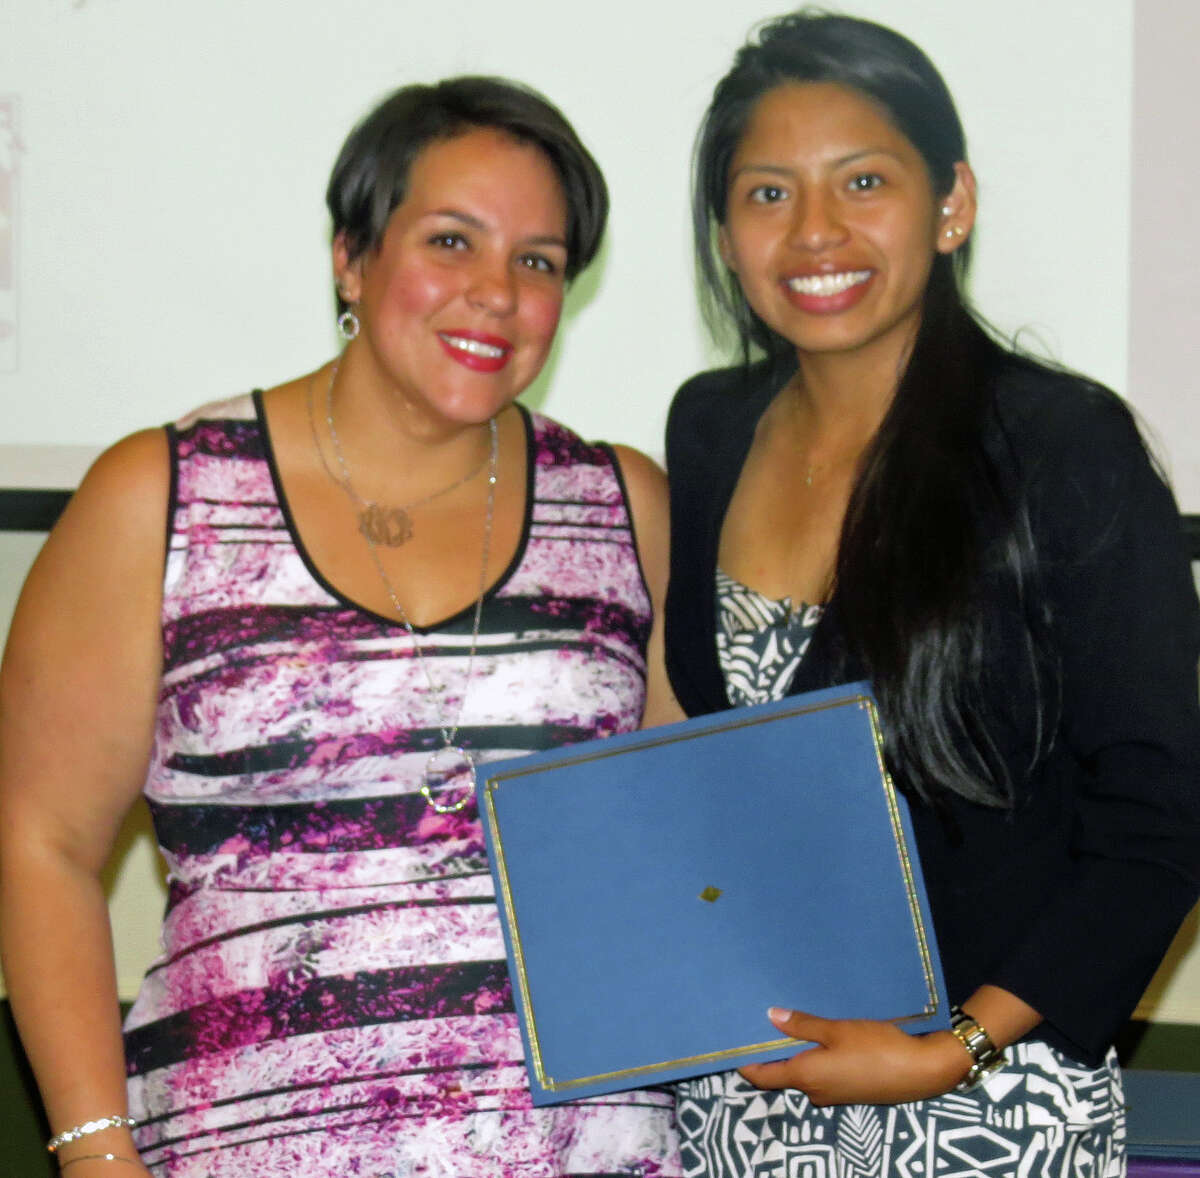 Abigail Kopp, chairwoman of the Latino Scholarship Fund, left, and Angelica Crespo, a scholarship winner from Danbury